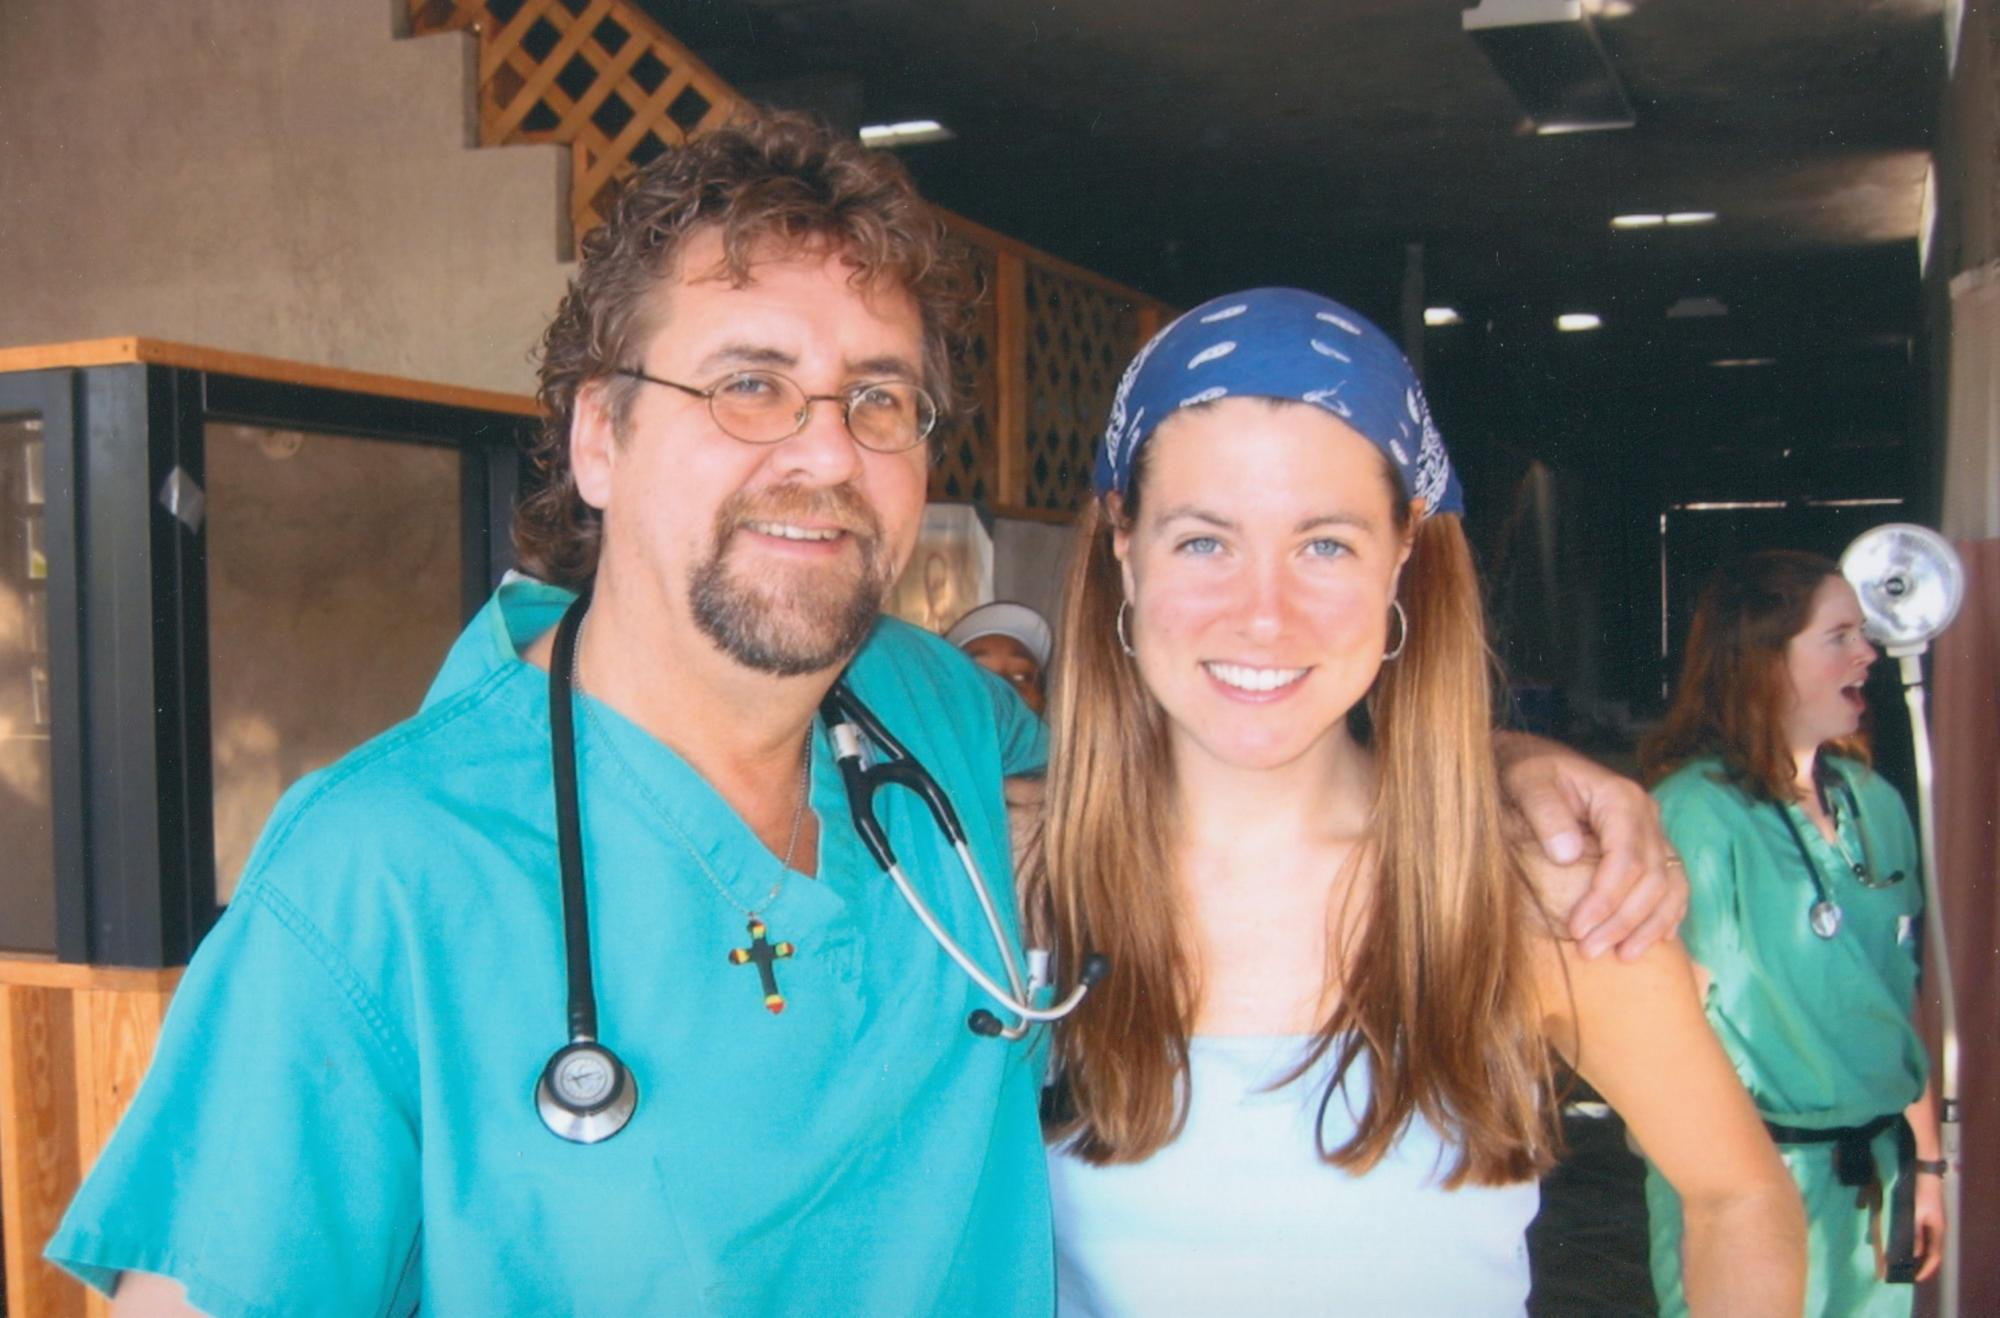 Dr_Brian_Lochen_with_Team_female_members_circa_Feb_2003_image43.jpg